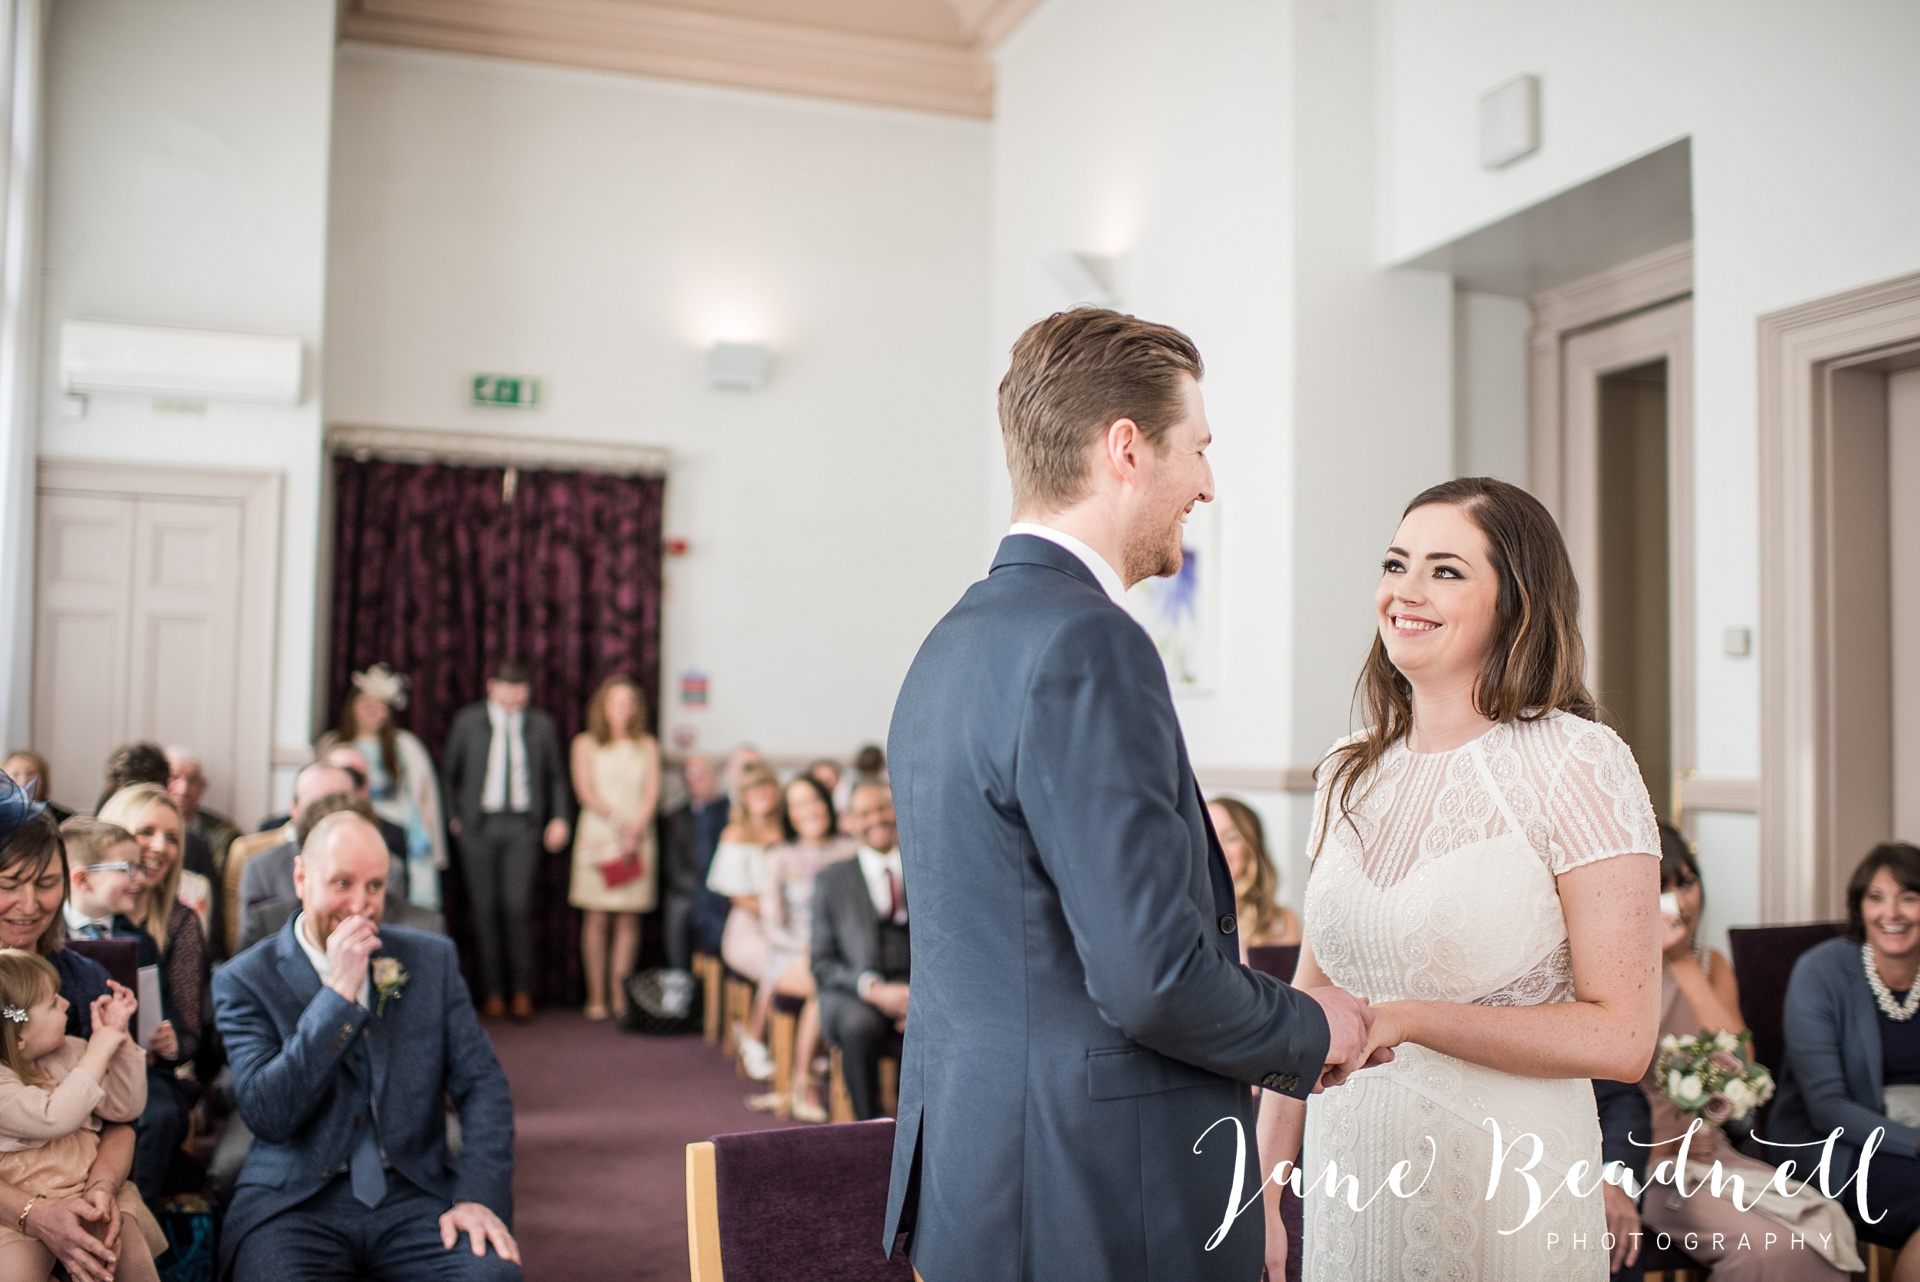 Wedding photography Cross Keys Leeds Wedding Jane Beadnell Photography_0031